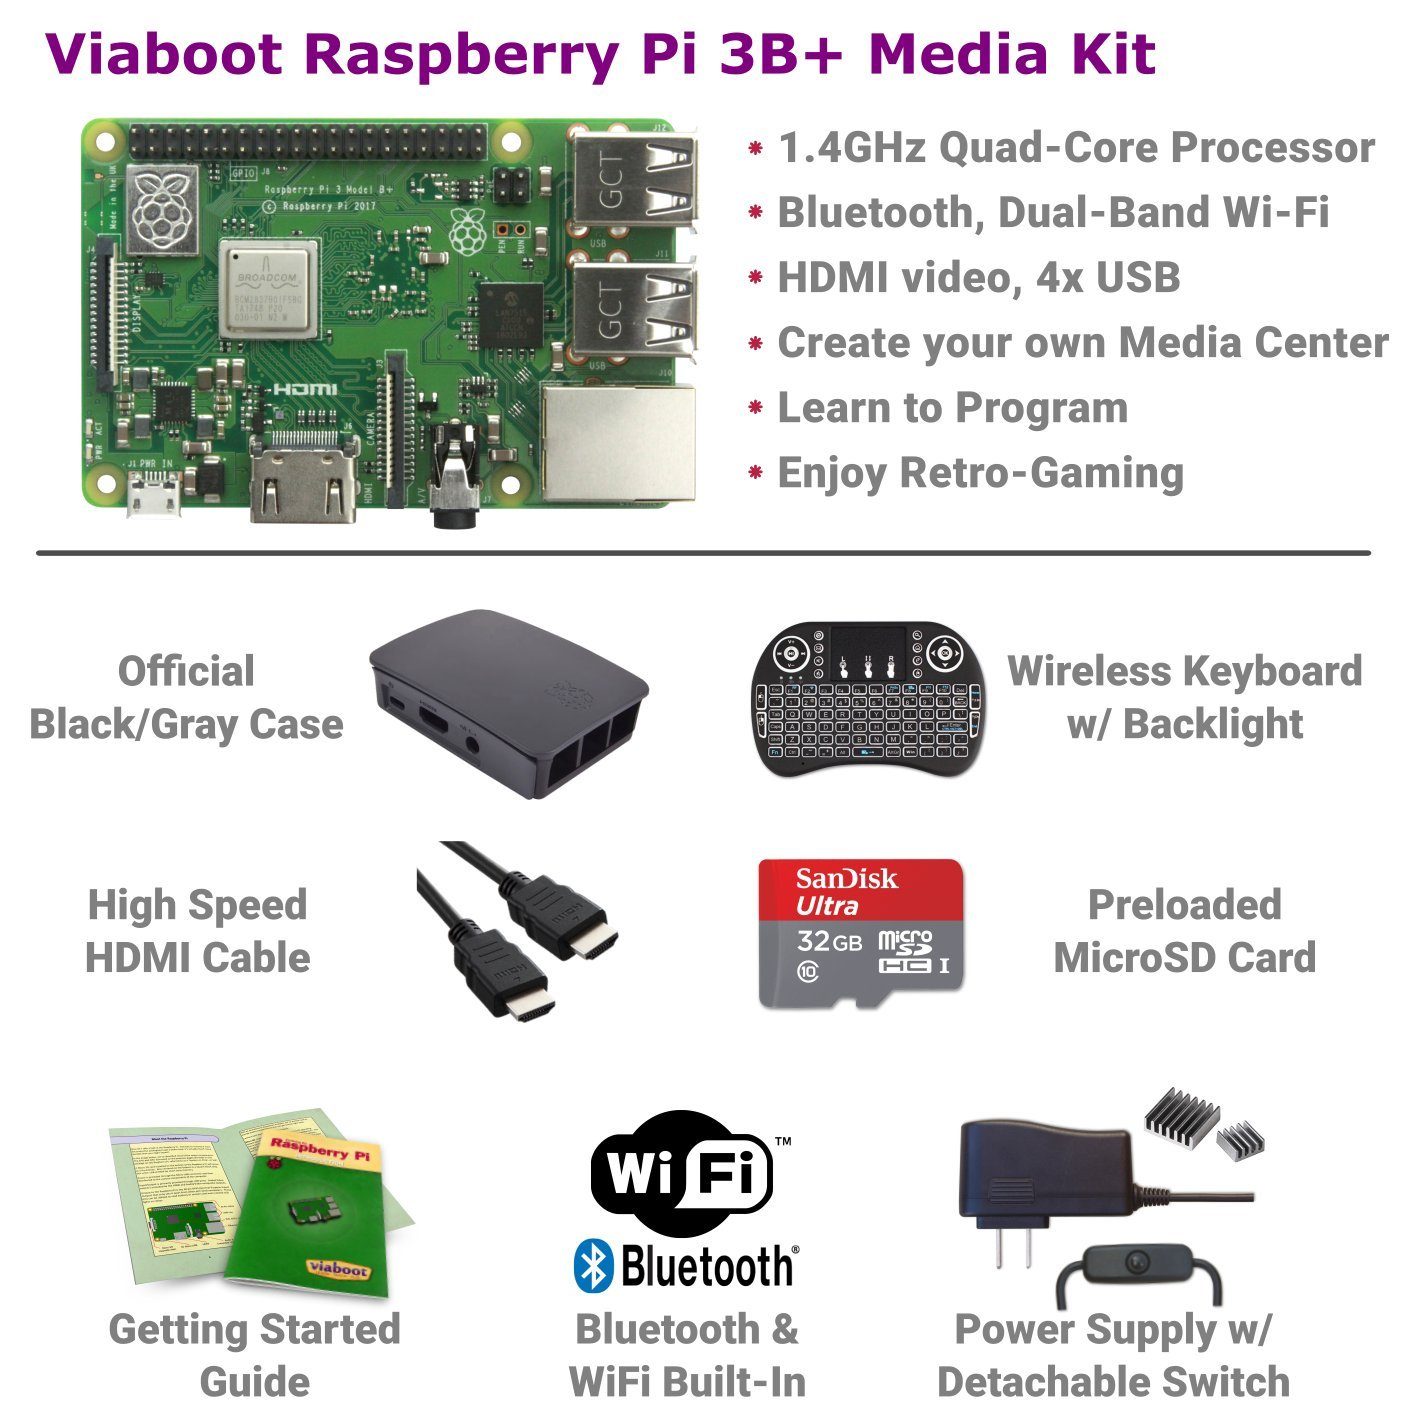 Viaboot Raspberry Pi 3 B+ Deluxe Kit — Official 32GB MicroSD Card, Official Rasbperry Pi Foundation Black/Gray Case, Backlit Keyboard Edition by Viaboot (Image #2)